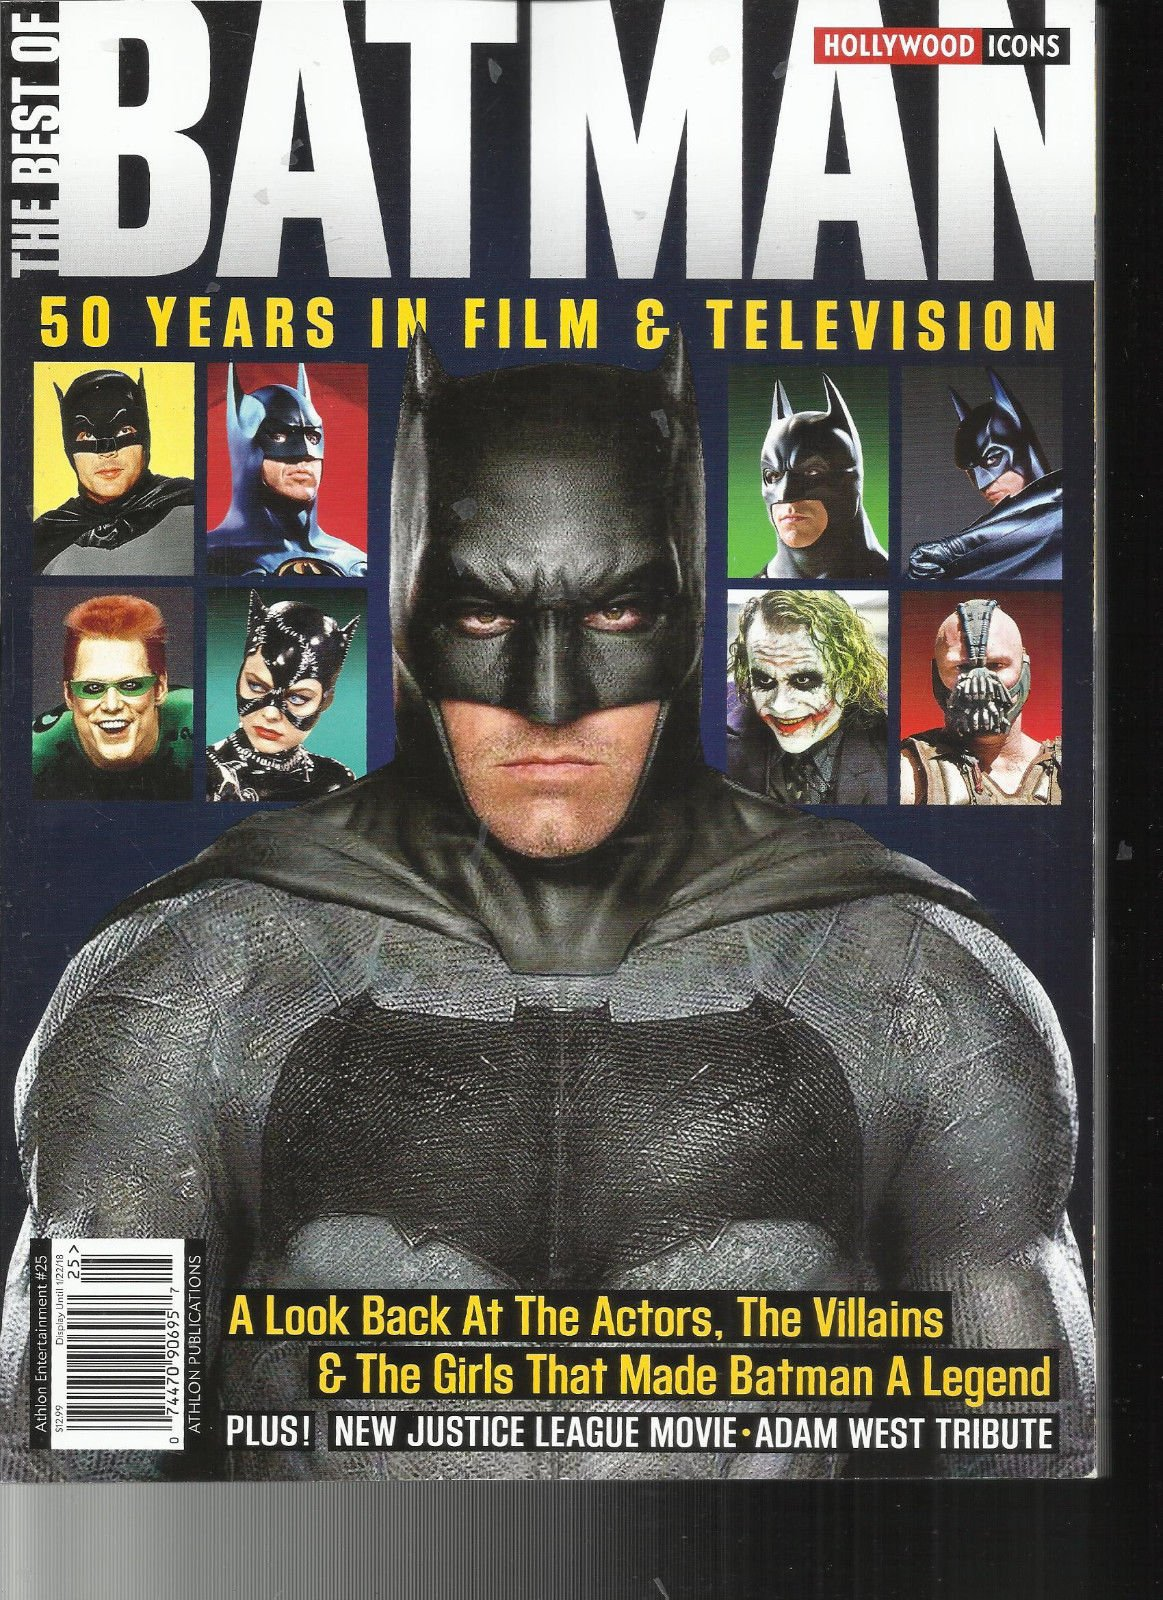 THE BEST BATMAN MAGAZINE, 50 YEARS IN FILM & TELEVISION HOLLY WOOD ICONS, 2017